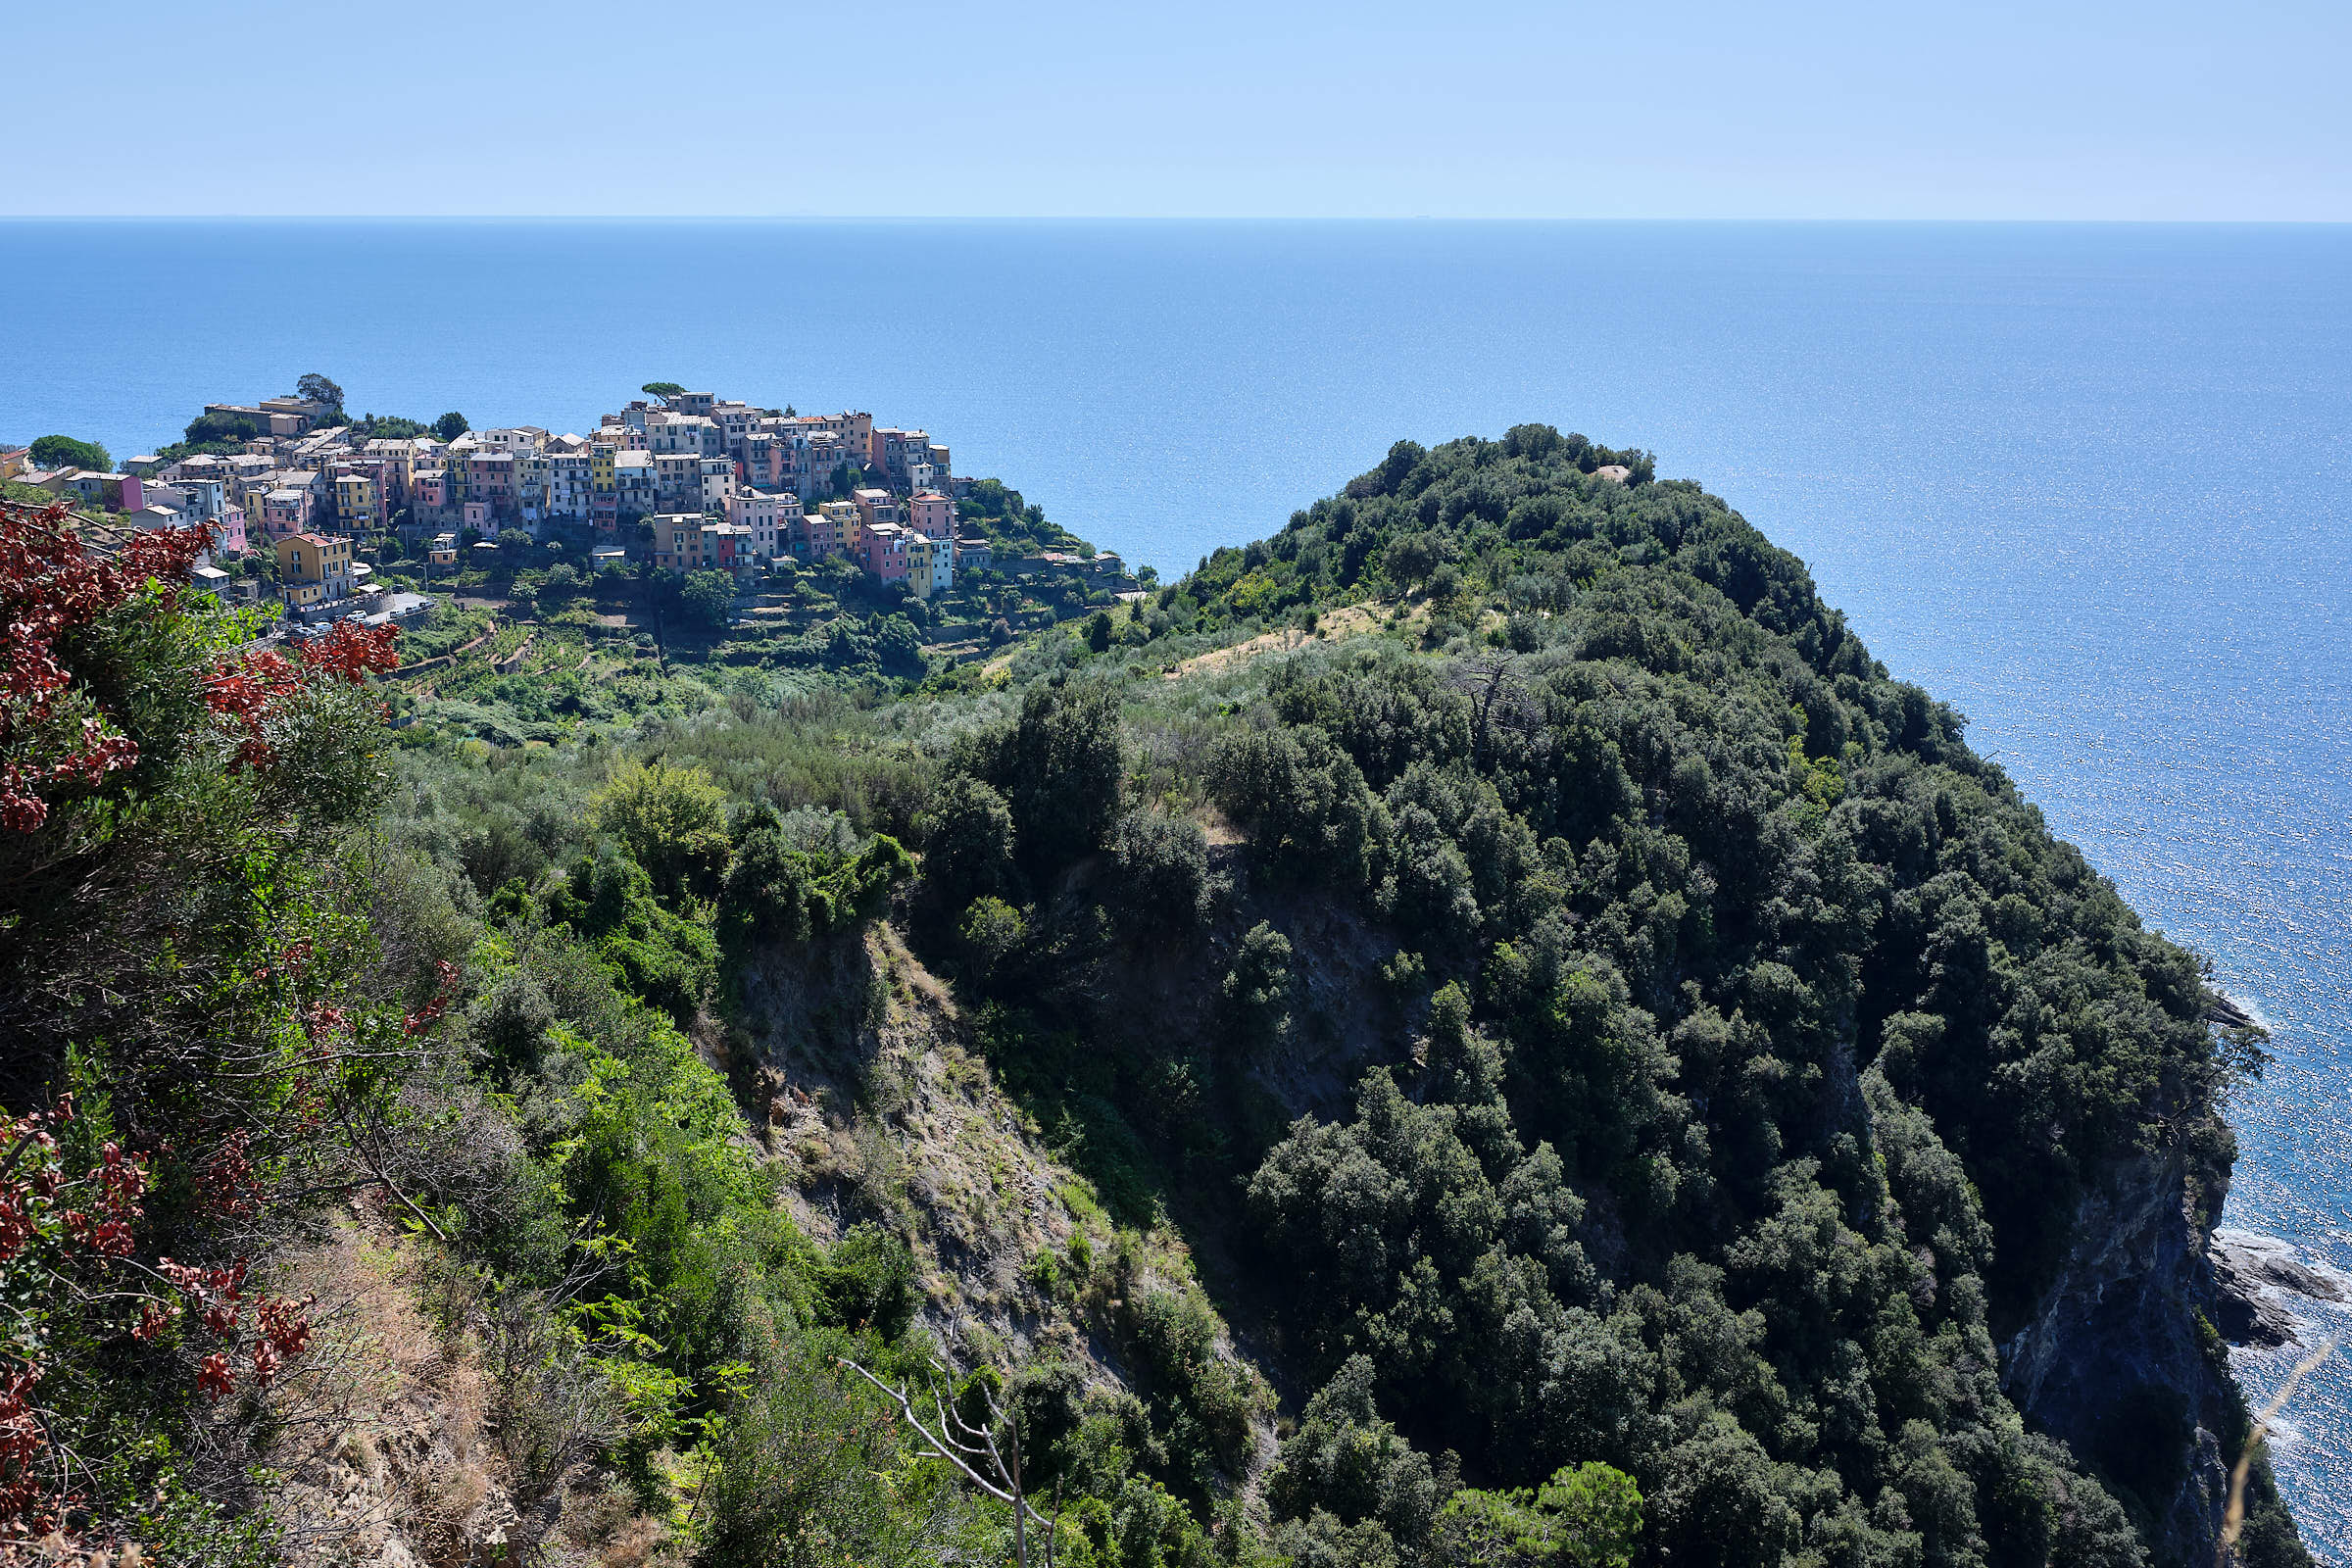 From from the hiking trail, Cinque Terre